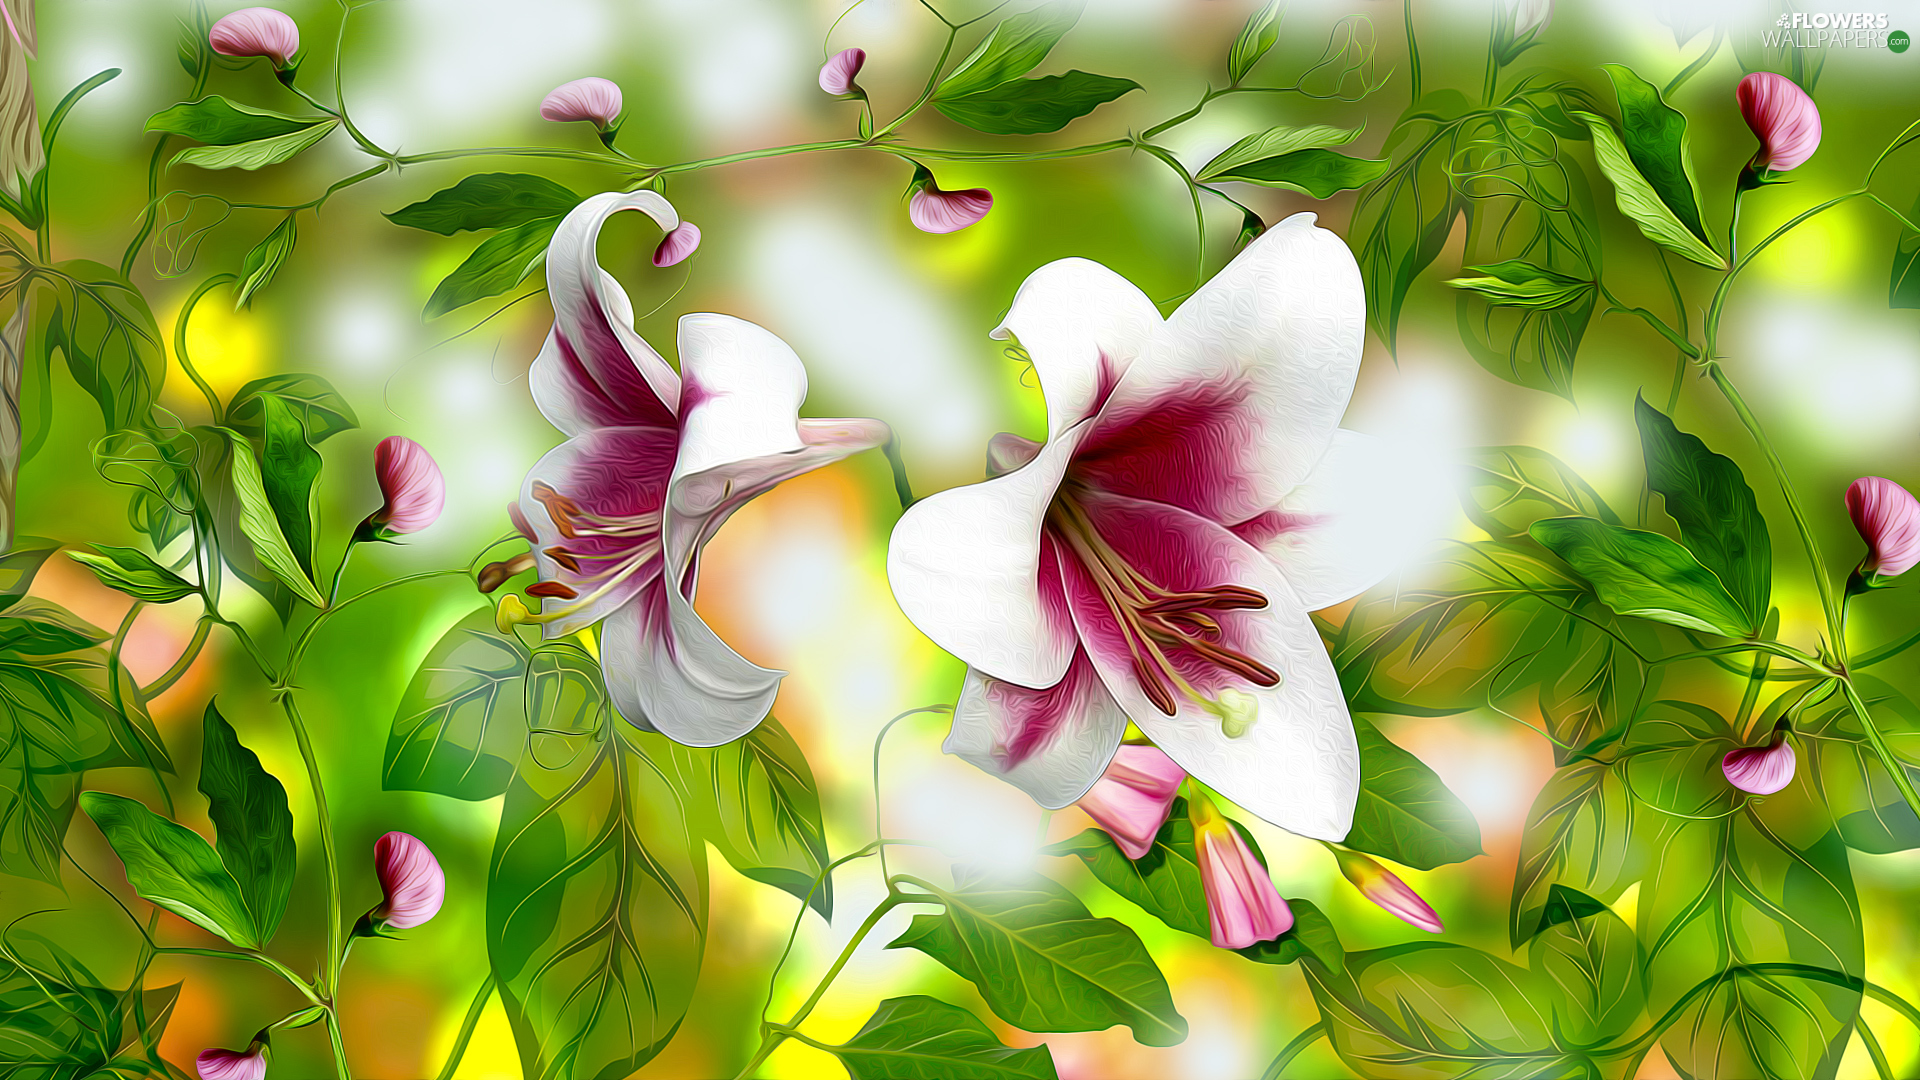 Flowers, Fragrant Peas, graphics, lilies